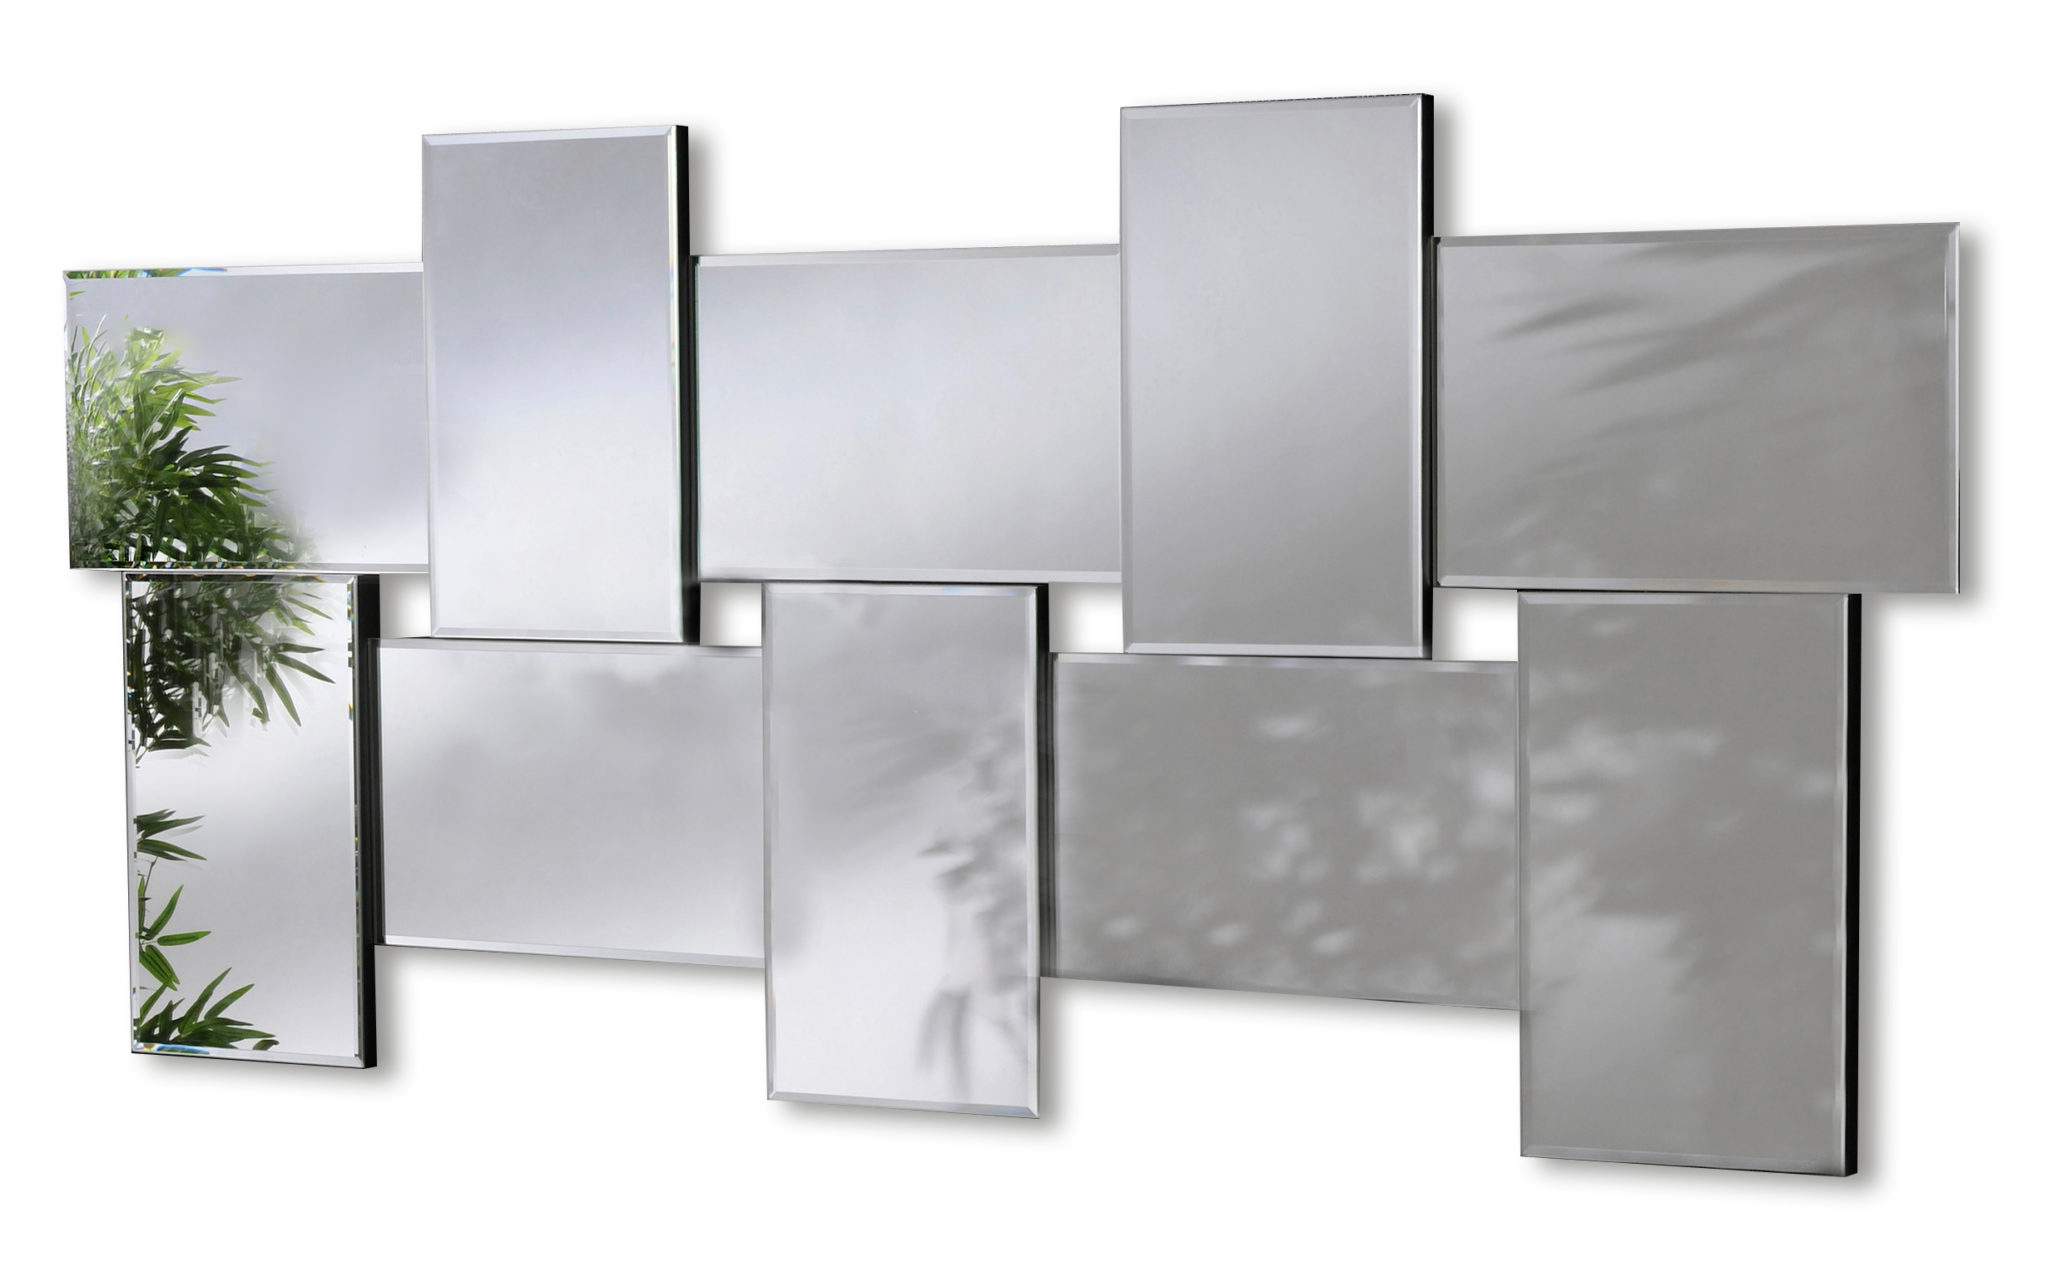 Ceres Large Modern Bevelled Wall Mirrors For Recent Modern Large Wall Mirrors (View 6 of 20)